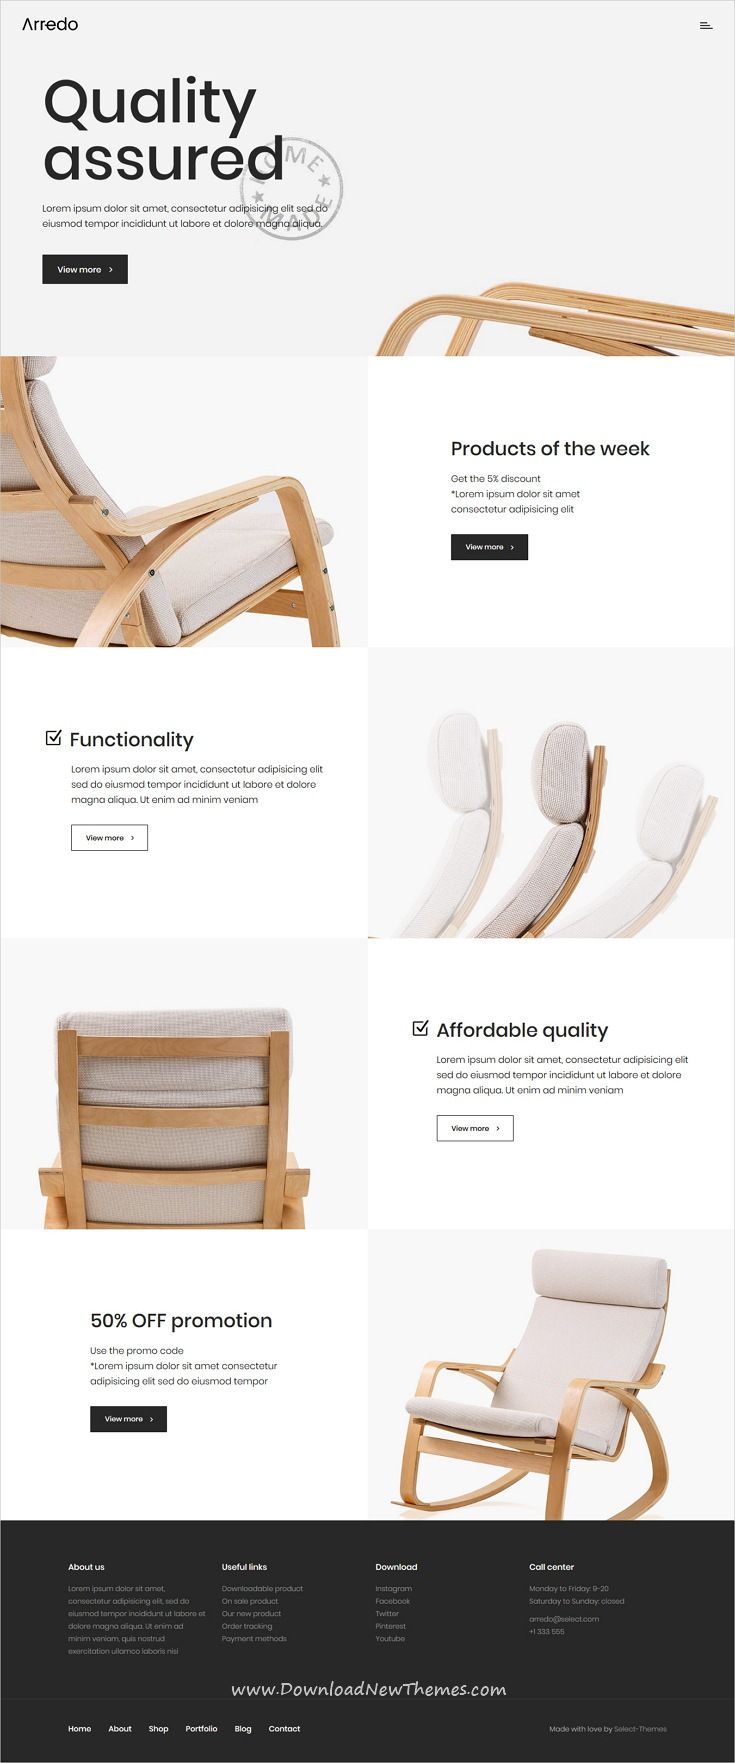 Arredo is a clean, minimal and modern design 100in10 responsive